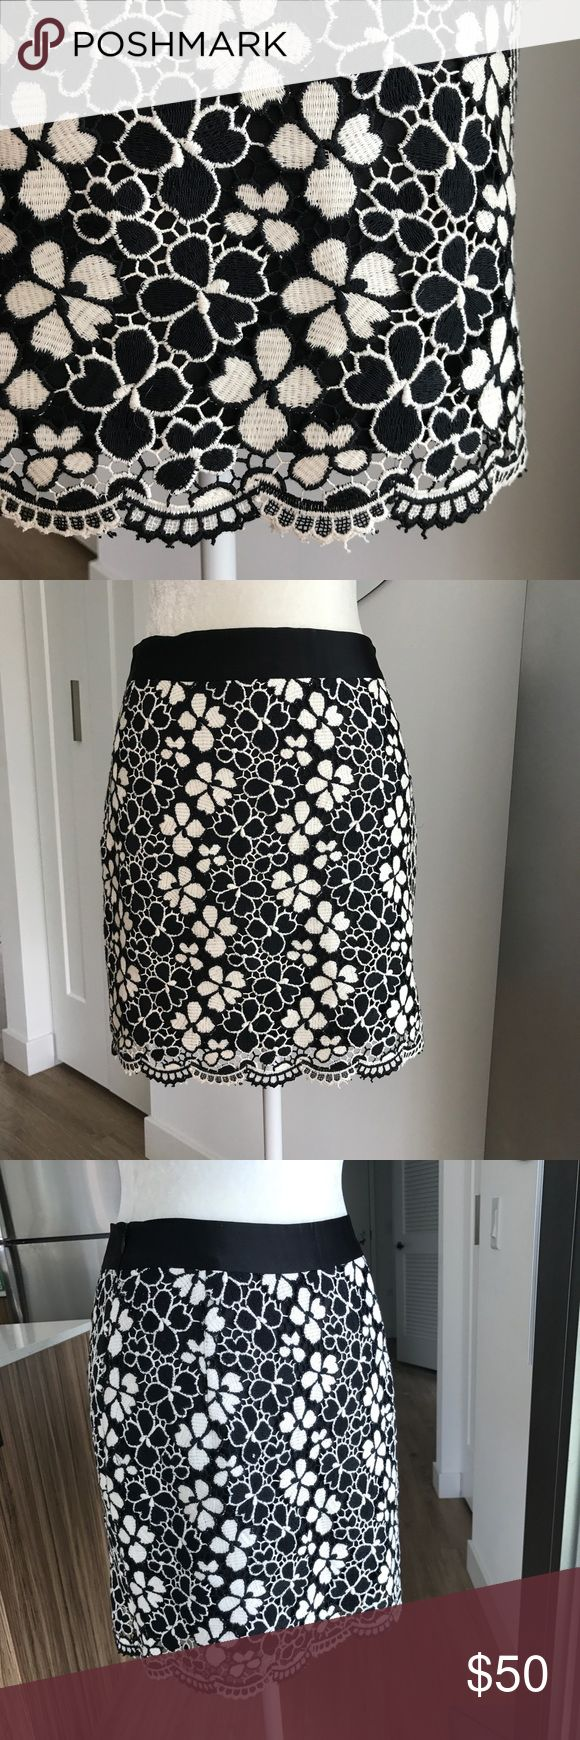 Milly Embroidered Floral Lace Mini Skirt 4 Gorgeous black and white Floral Embroidered Lace mini from Milly! So gorgeous and detailed. Size 4. Excellent pre-owned condition- no flaws. Offers welcome, no trades. Milly Skirts Mini